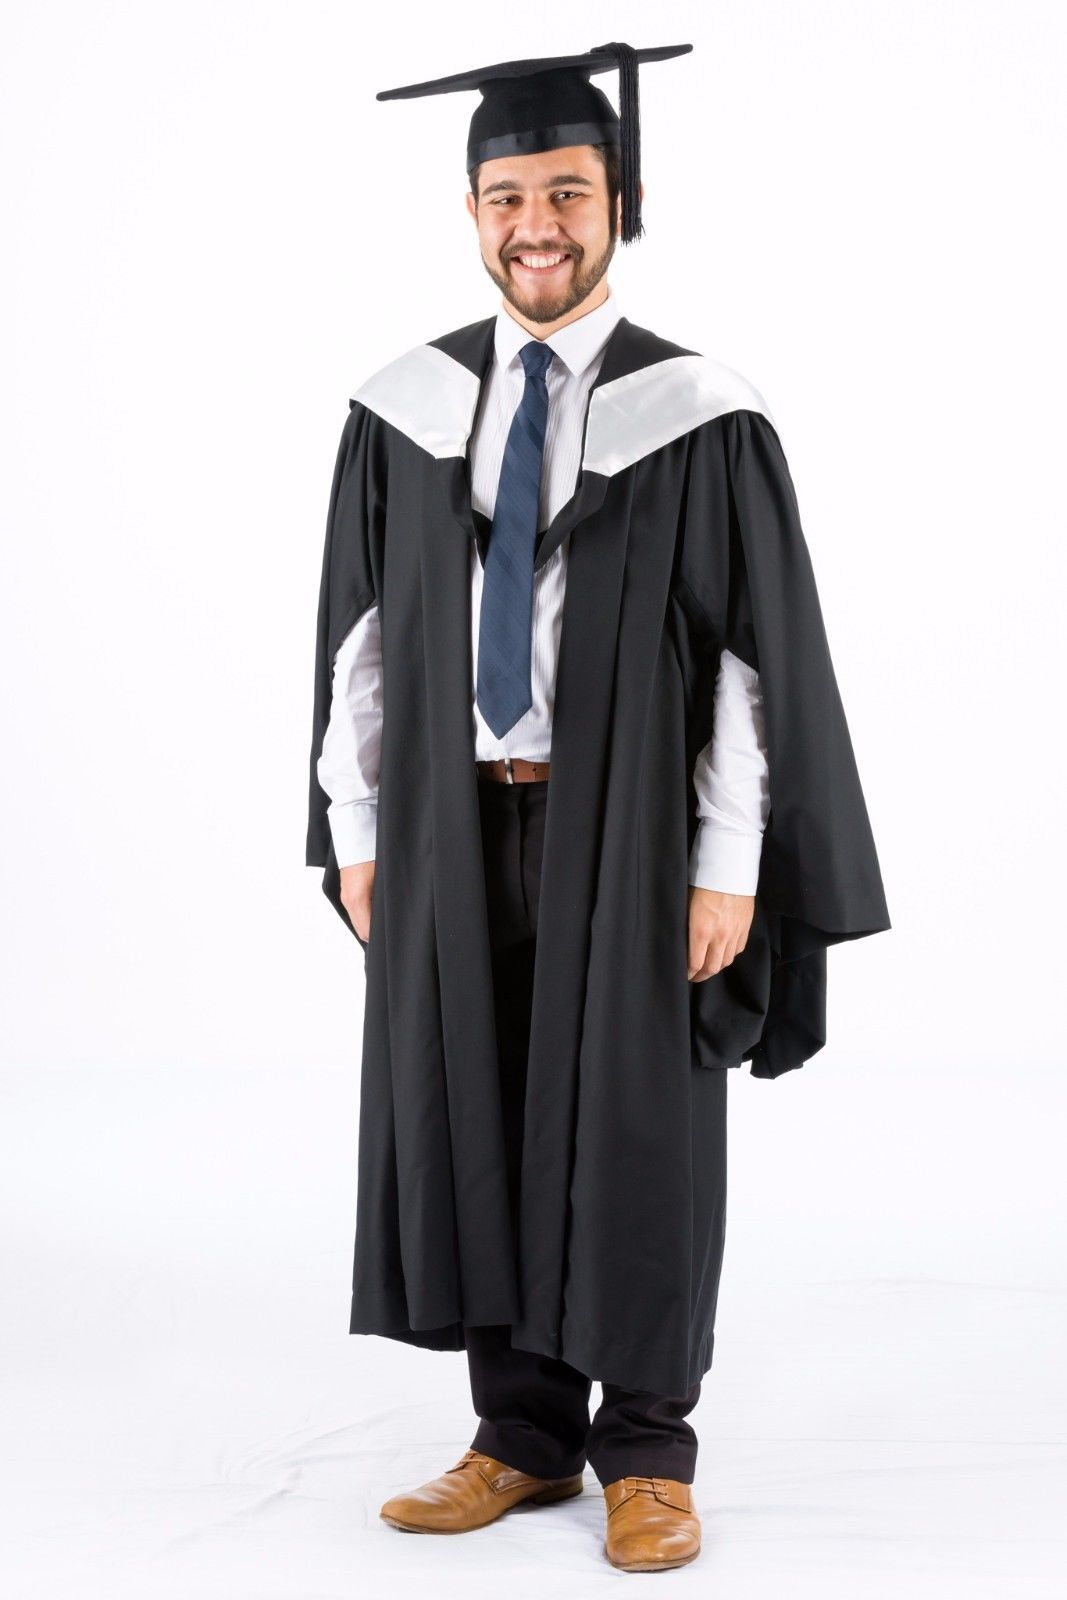 University-Academic-Hood-Graduation-Bachelor-Pearl-White-UQ-University-of-Qld-382202360421